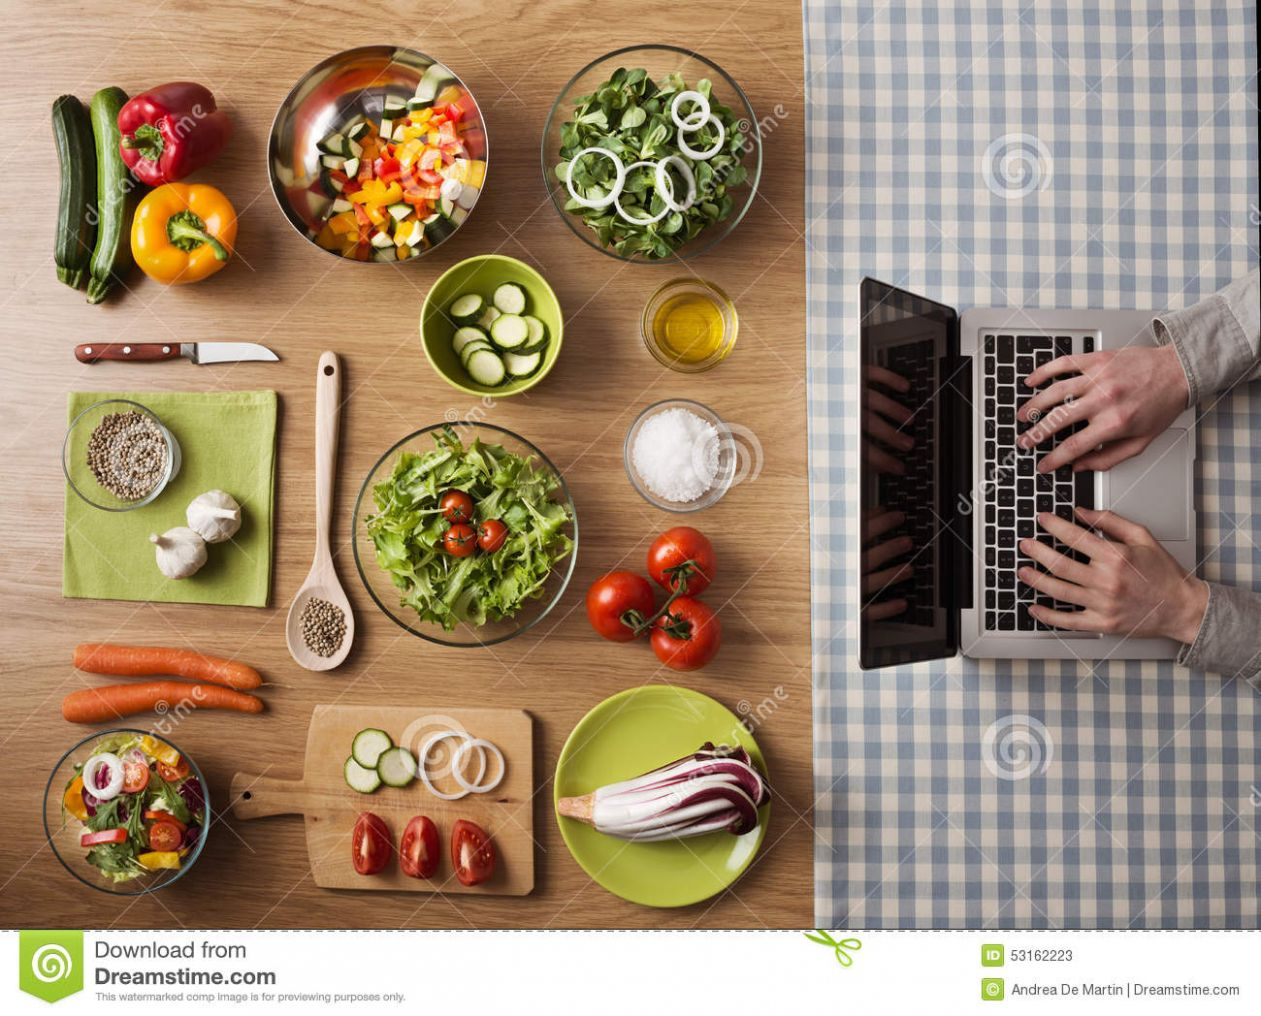 Vegetarian Healthy Food Online Recipes Stock Image - Image of ..